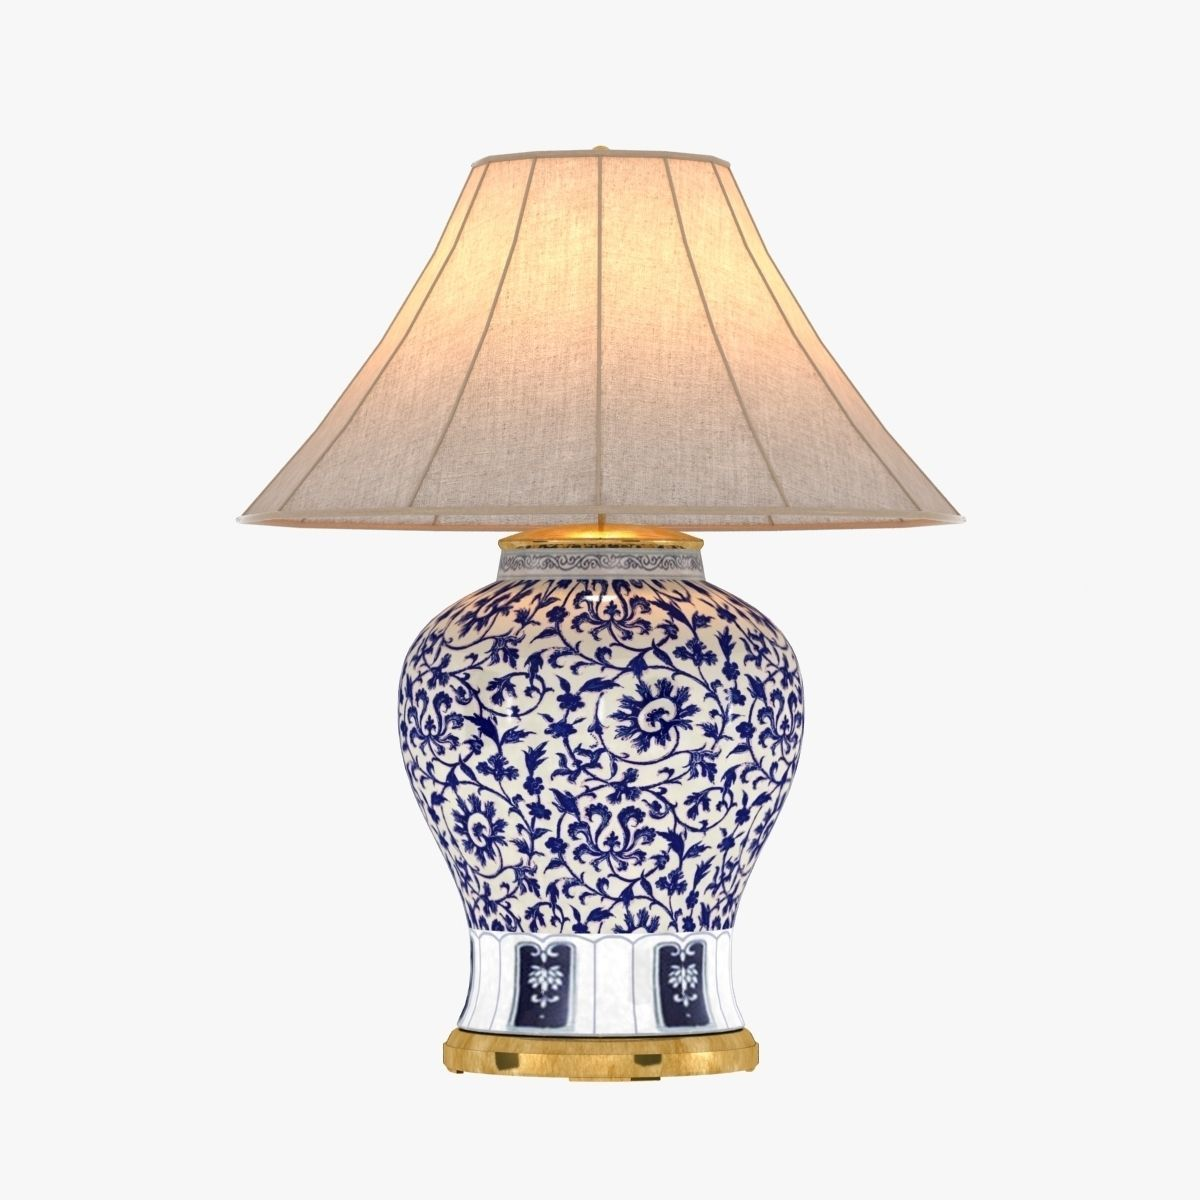 Ralph Lauren Marlena Large Table Lamp In Blue And White 3d Model Max